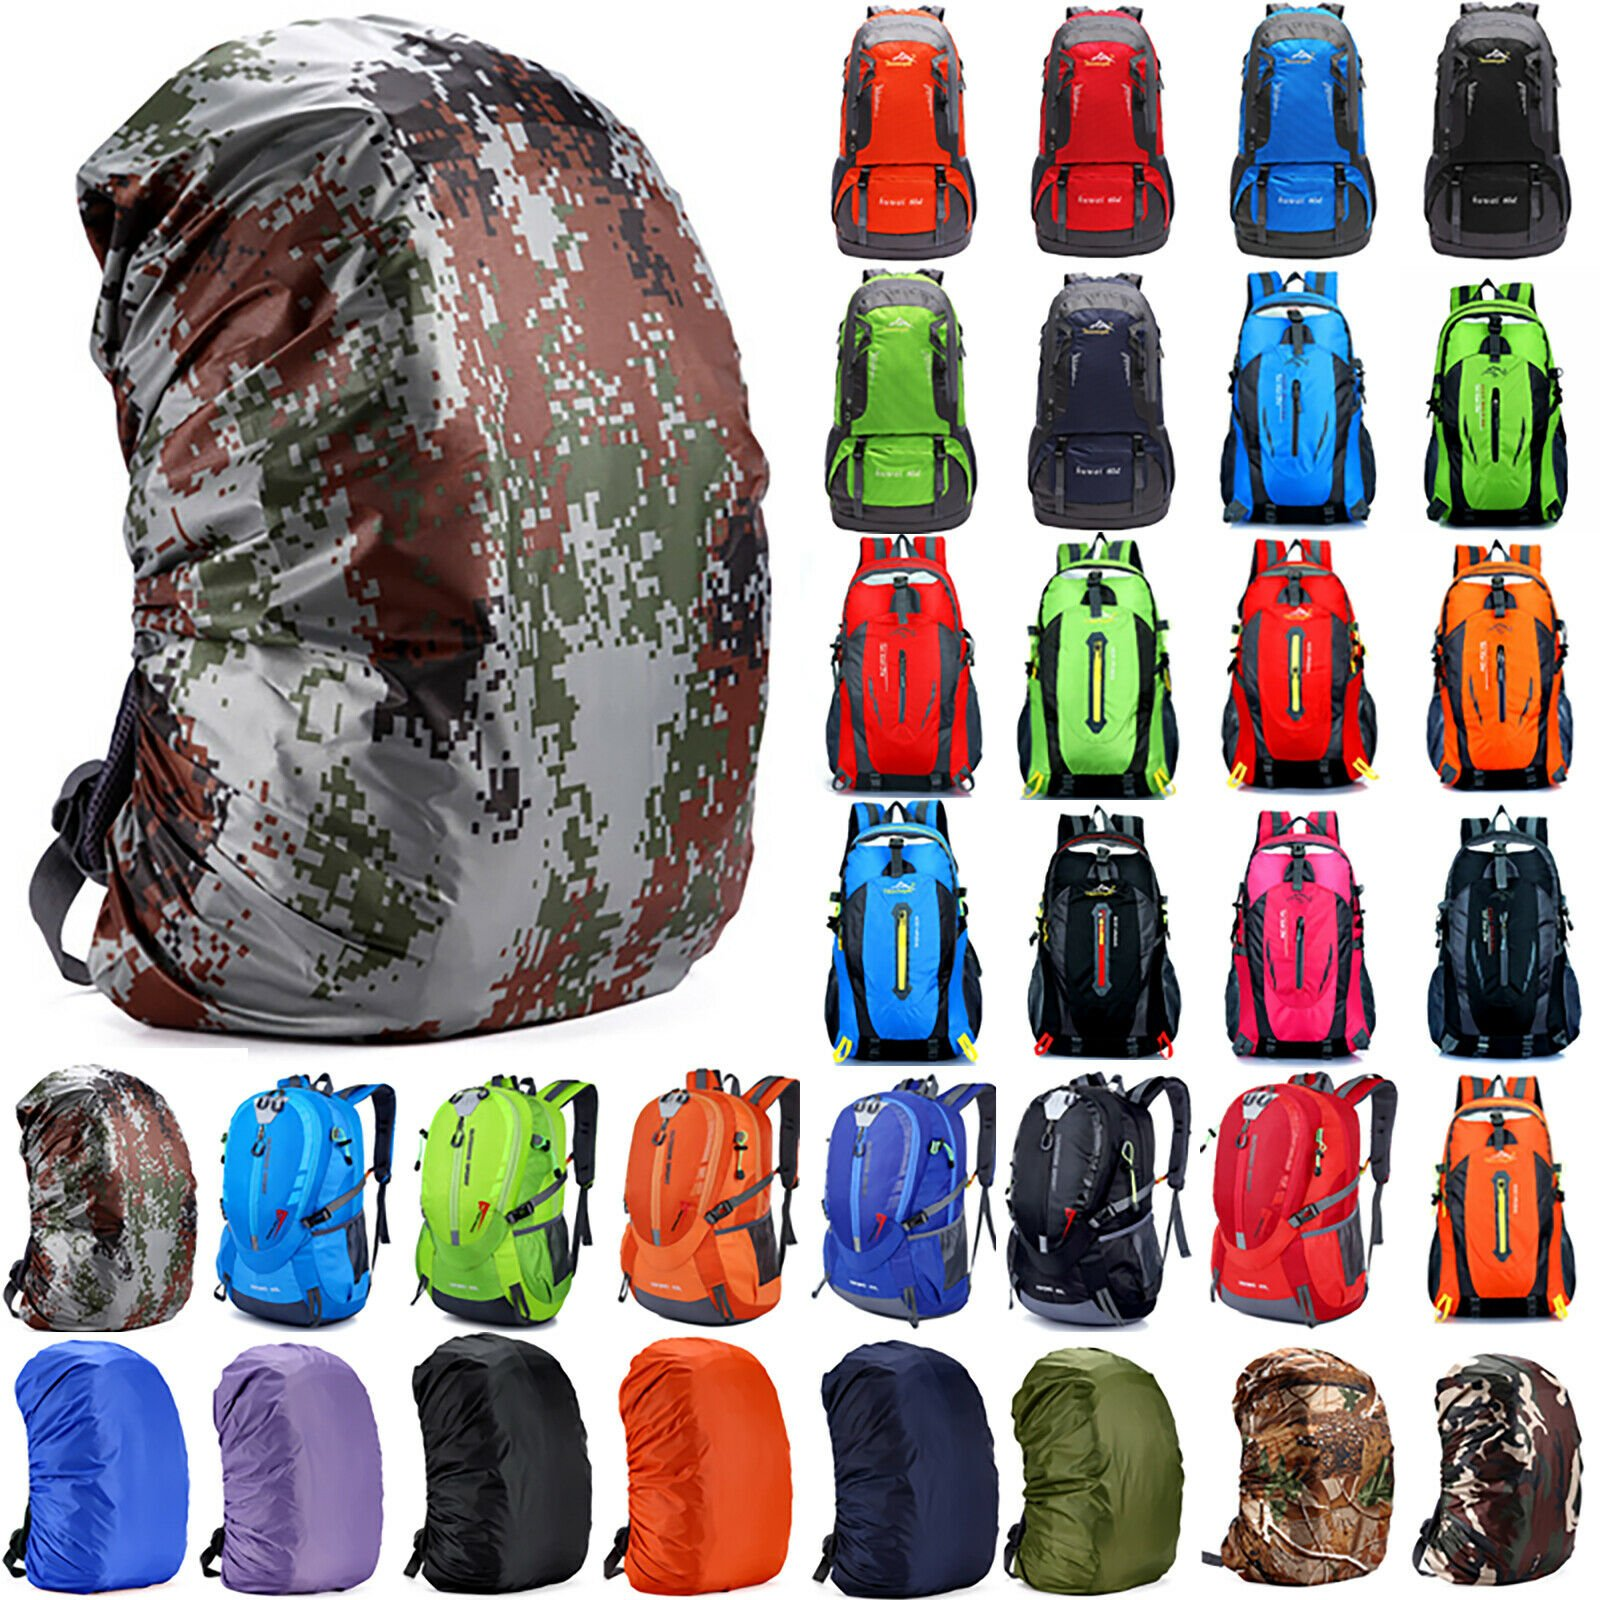 Large Backpack Rucksack Hiking Outdoor Camping Travel Day Pack Climbin...